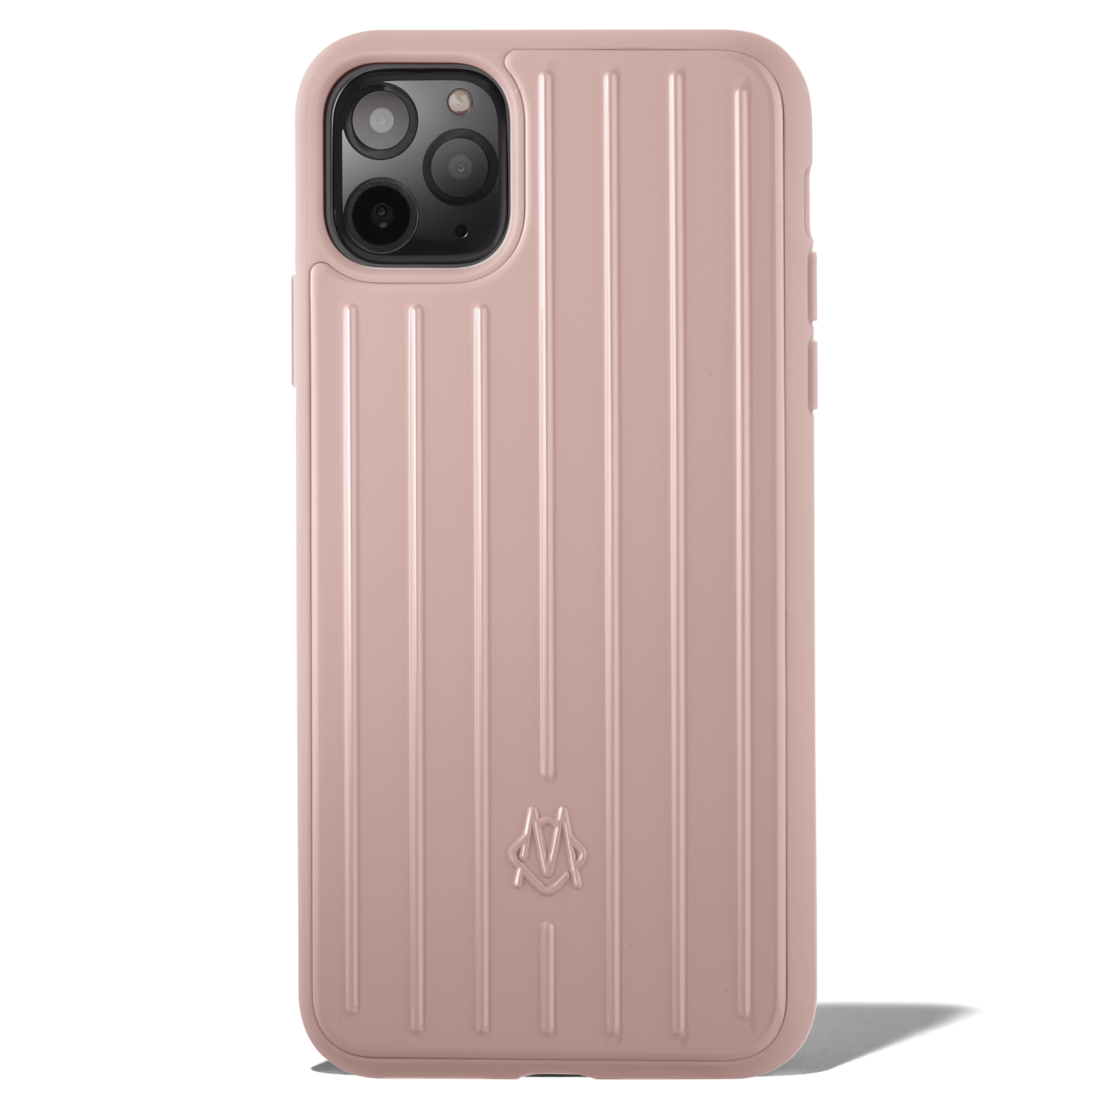 Polycarbonate Desert Rose Pink Groove Case for iPhone 11 Pro Max - accessories